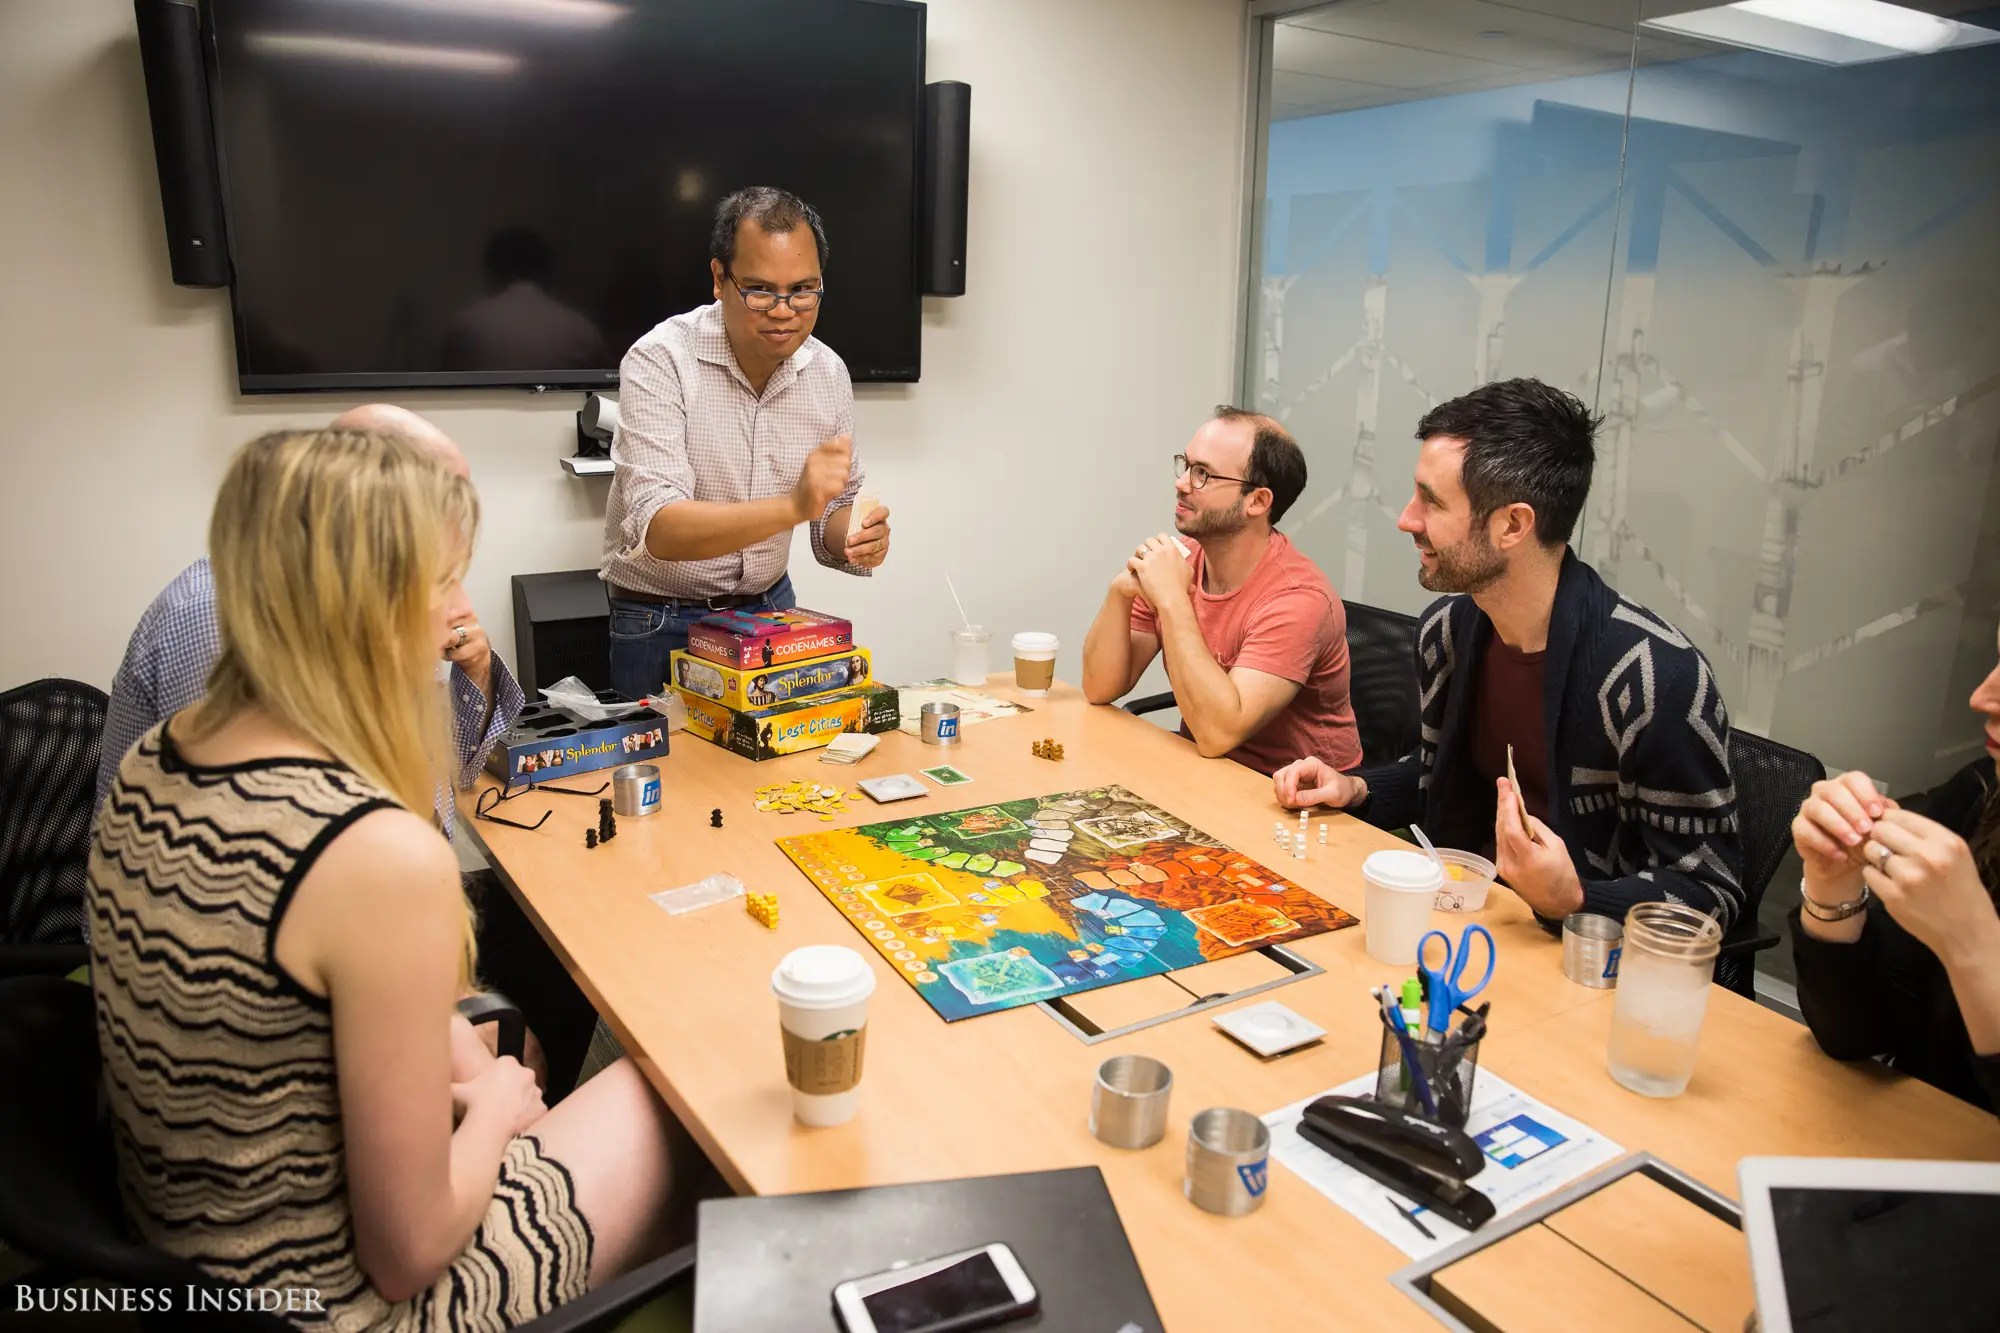 """We visited LinkedIn on a what they call an """"InDay"""" — a monthly event that offers LinkedIn employees the chance to participate in different activities and team-building exercises. Here, a group of workers are enjoying an intense game of """"Lost Cities."""""""